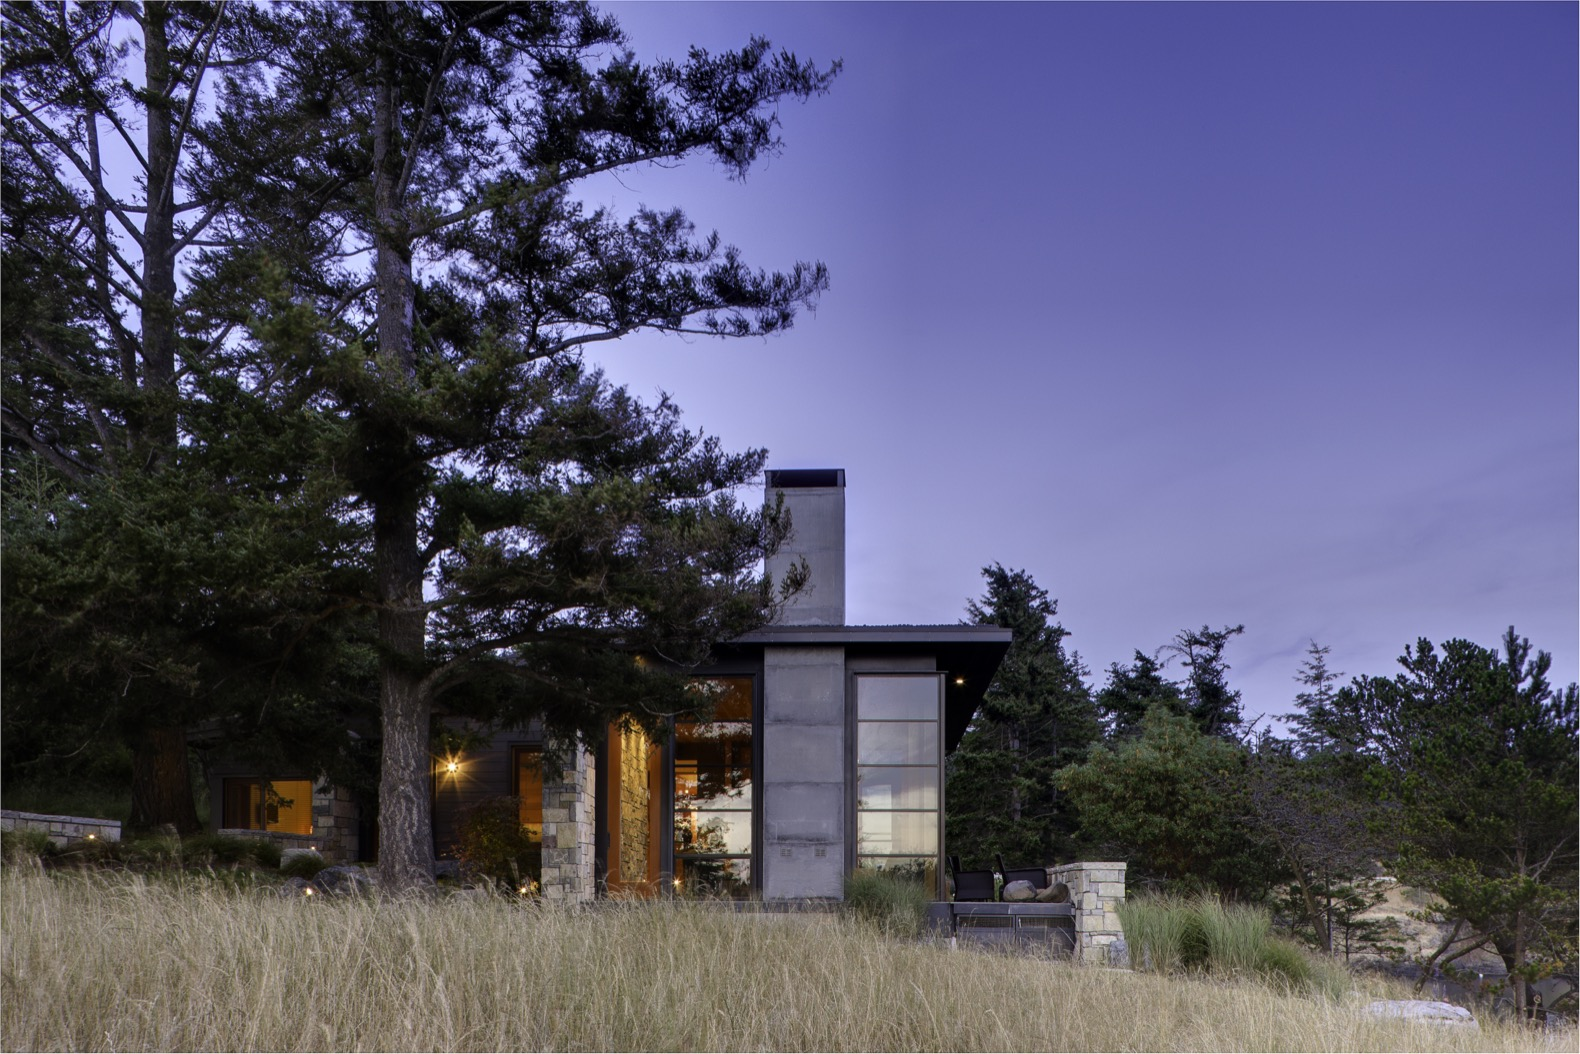 Green-roofed vacation home embraces old-growth trees in the San Juan Islands